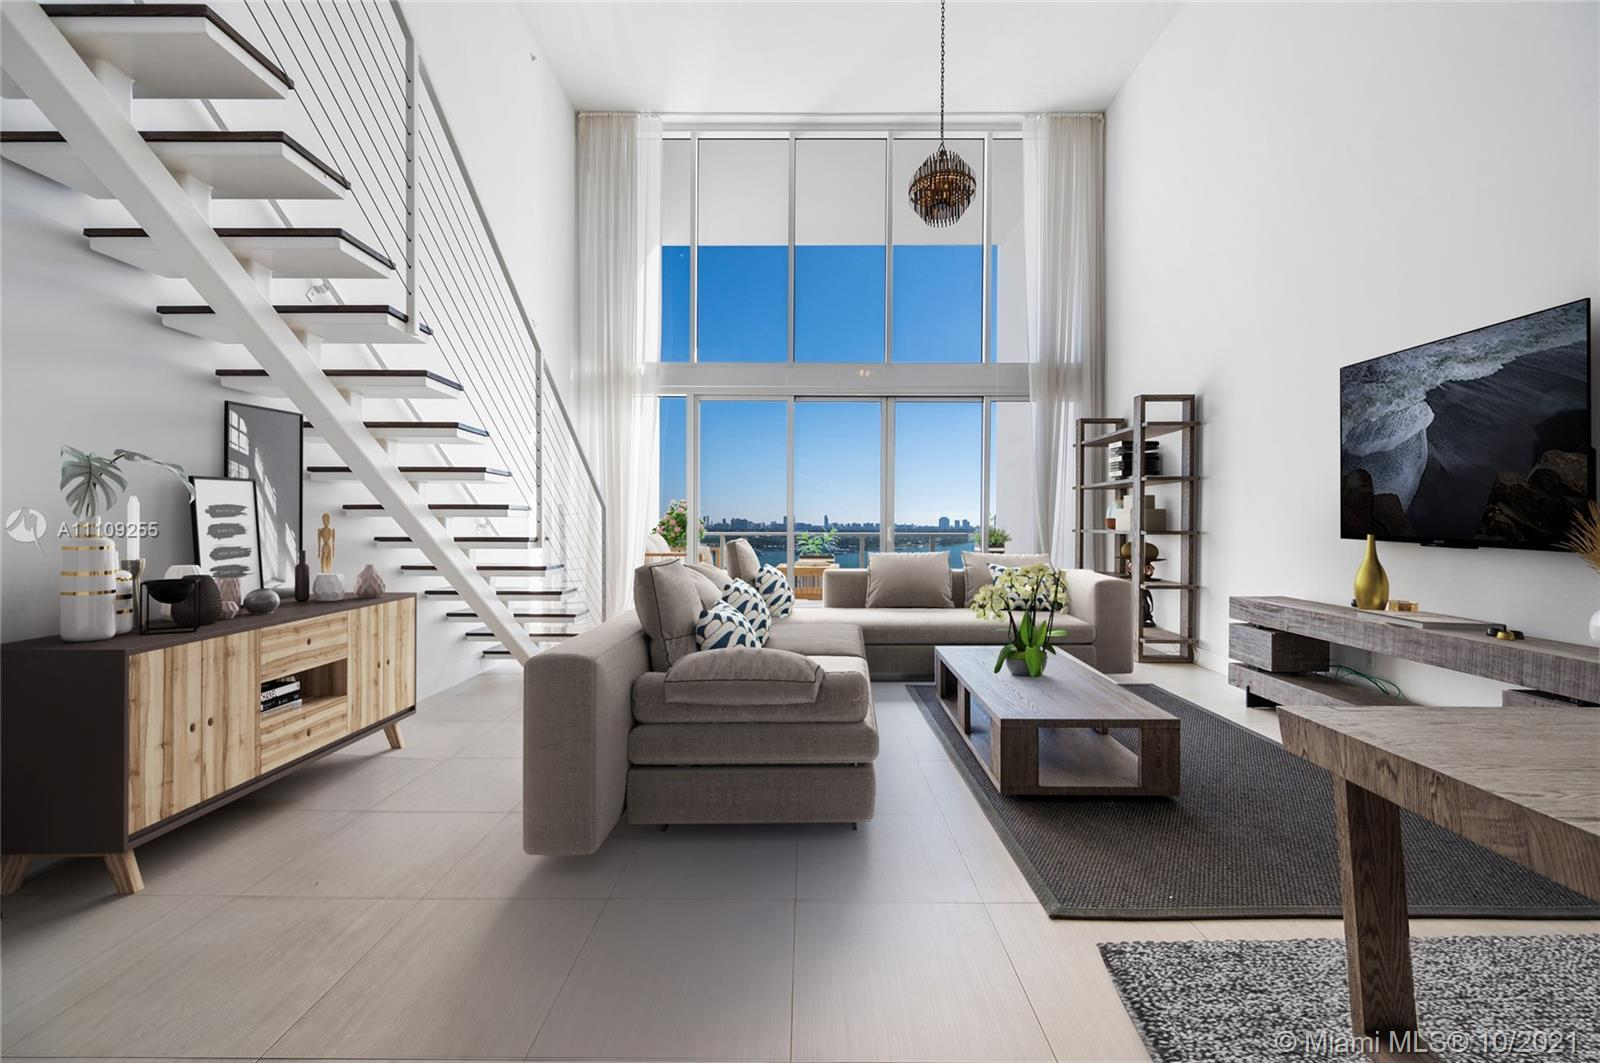 Welcome to Ten Museum Park by Oppenheim Architecture. This Two-Story Waterfront Loft has two bedroom